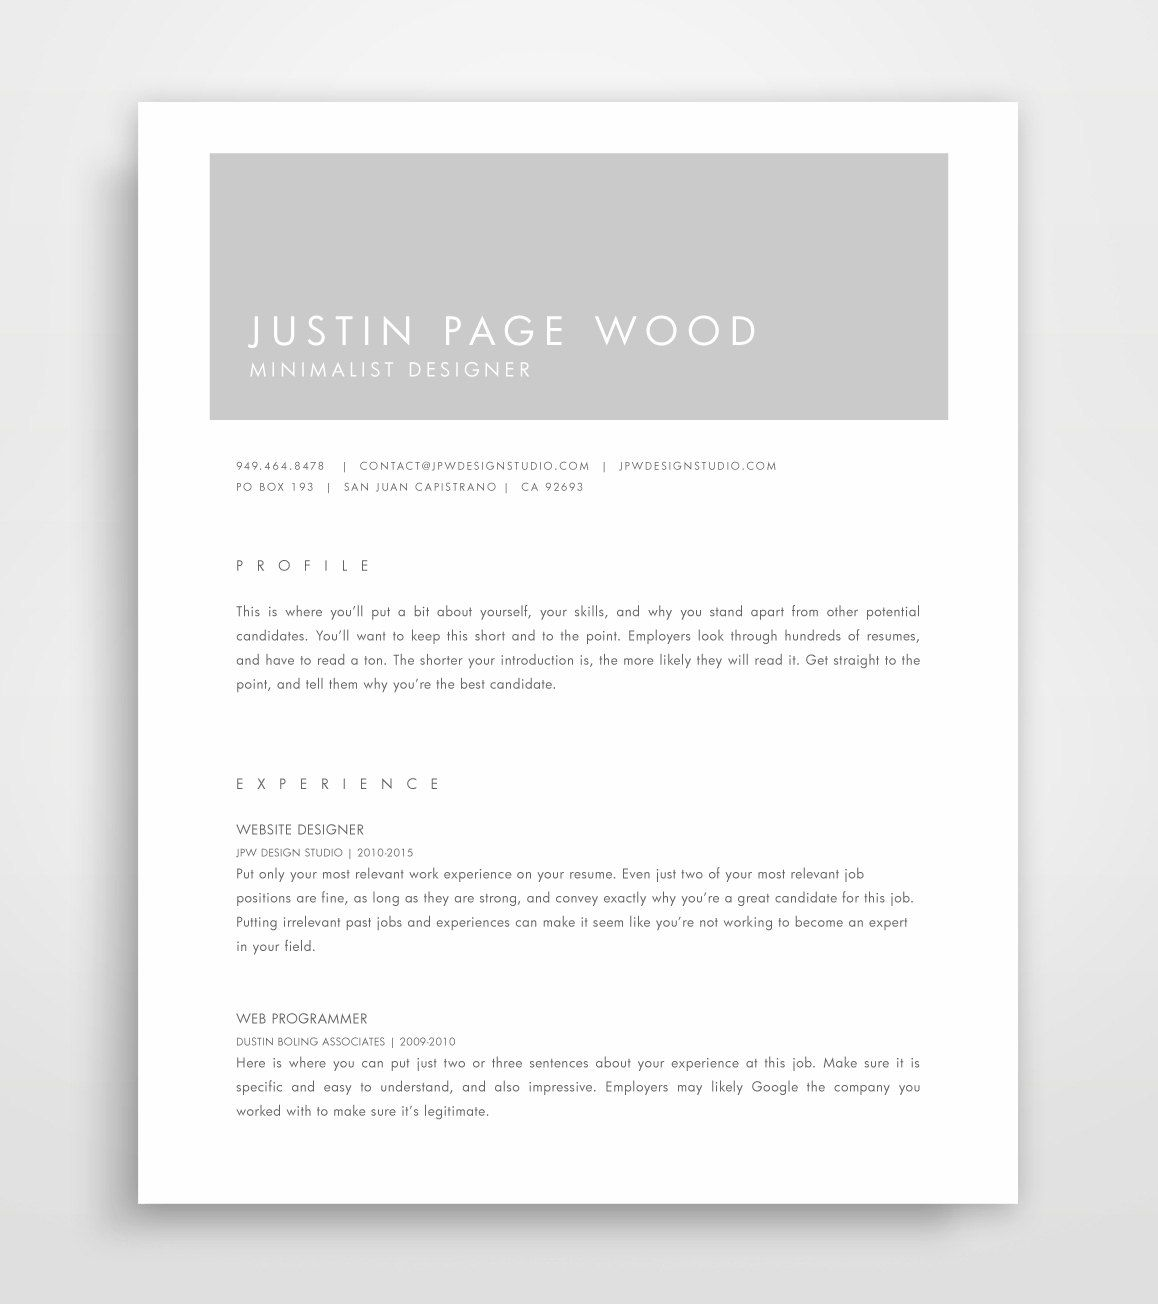 two page resume sample resume design template minimalist modern resumes grey white modern resume template printable